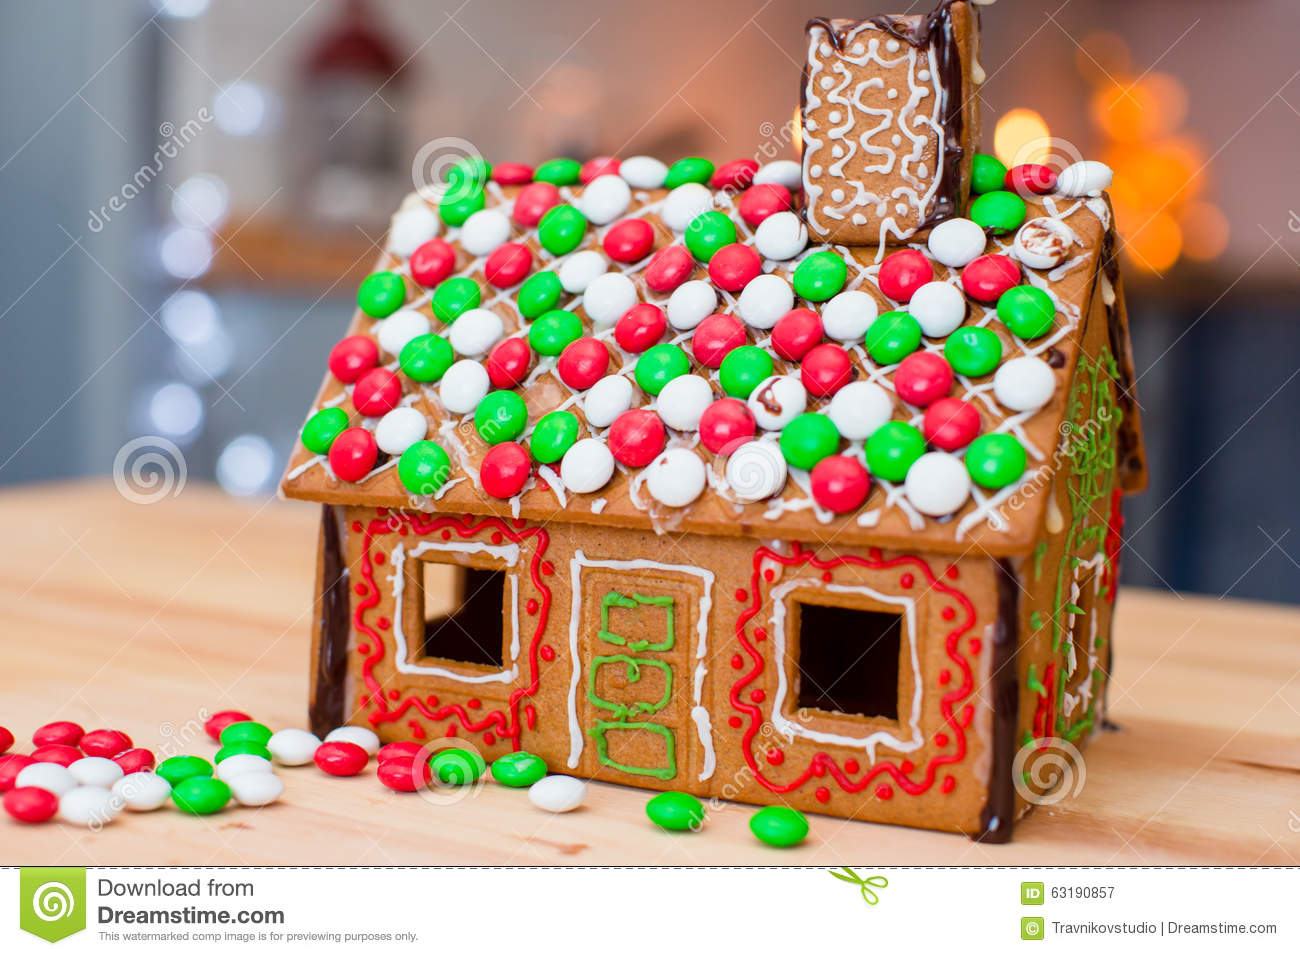 Christmas Gingerbread House Background.Candy Ginger House Background Christmas Tree Stock Image